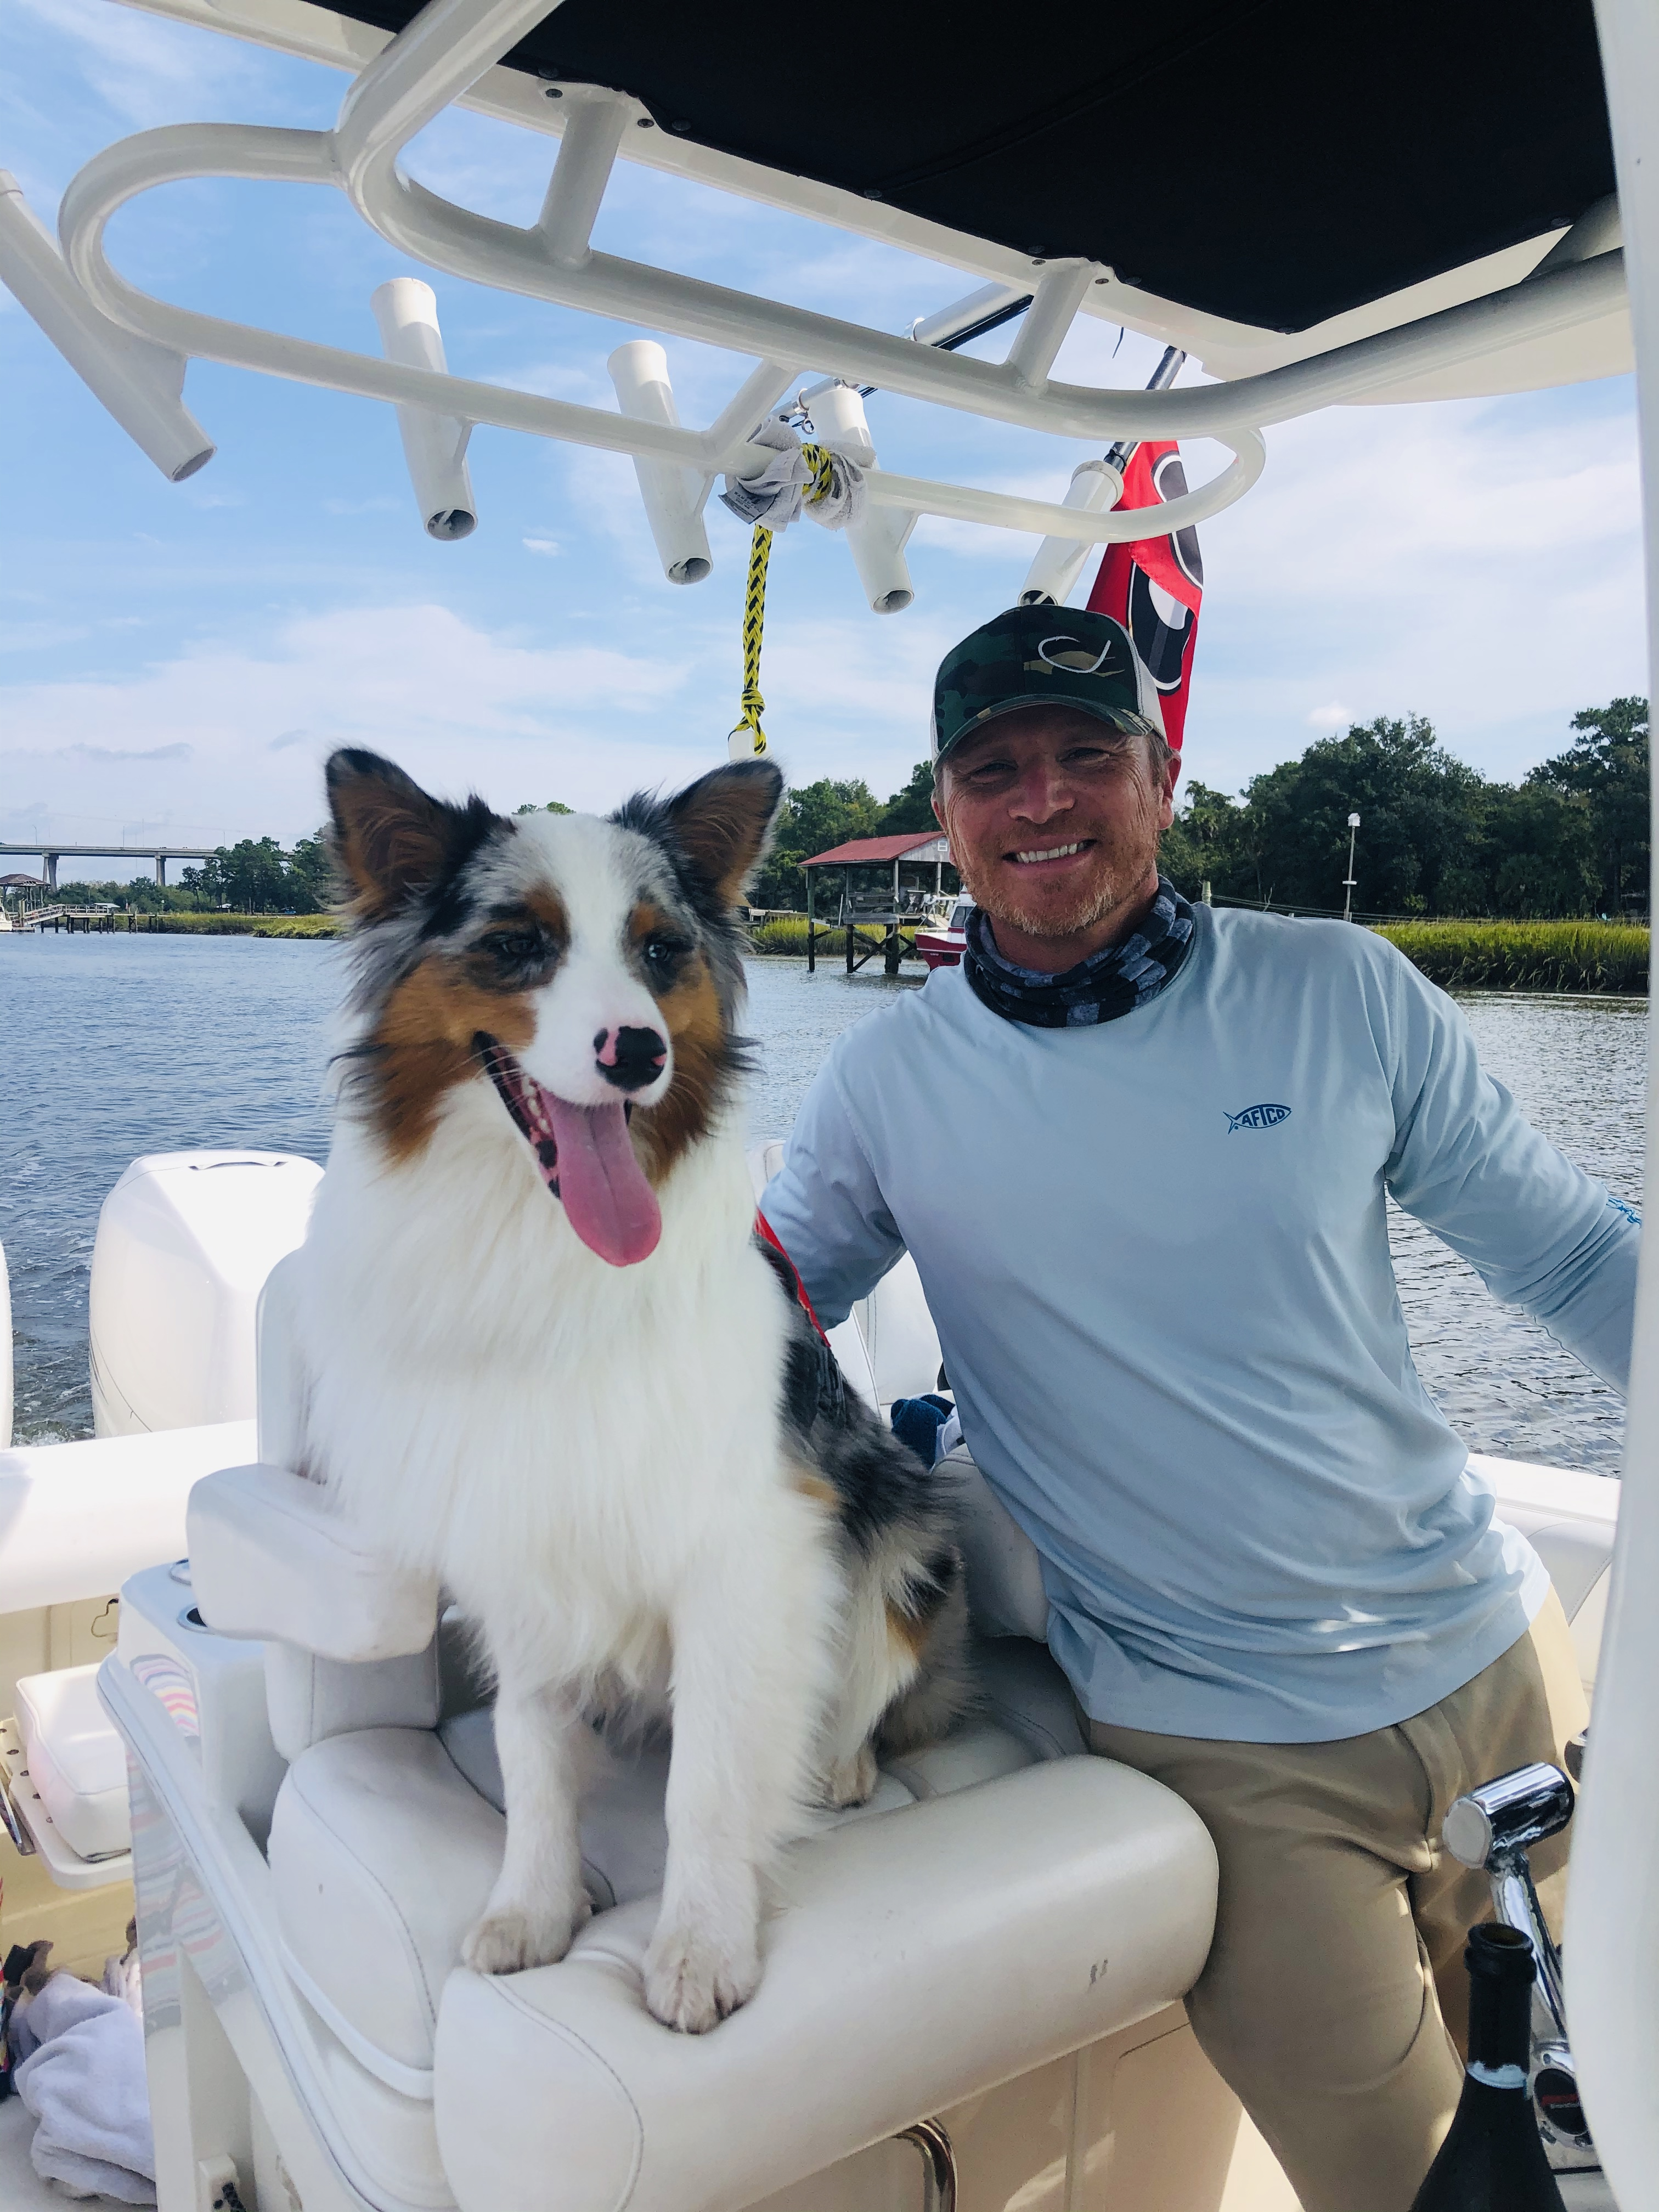 """Christy Winer sent this photo of Scout, a 1½-year-old Australian shepherd. """"He enjoys opening doors, chewing your shoes, stealing our daughter 's blanket, boat rides and playing Frisbee. He's a handful, but we love him!"""""""